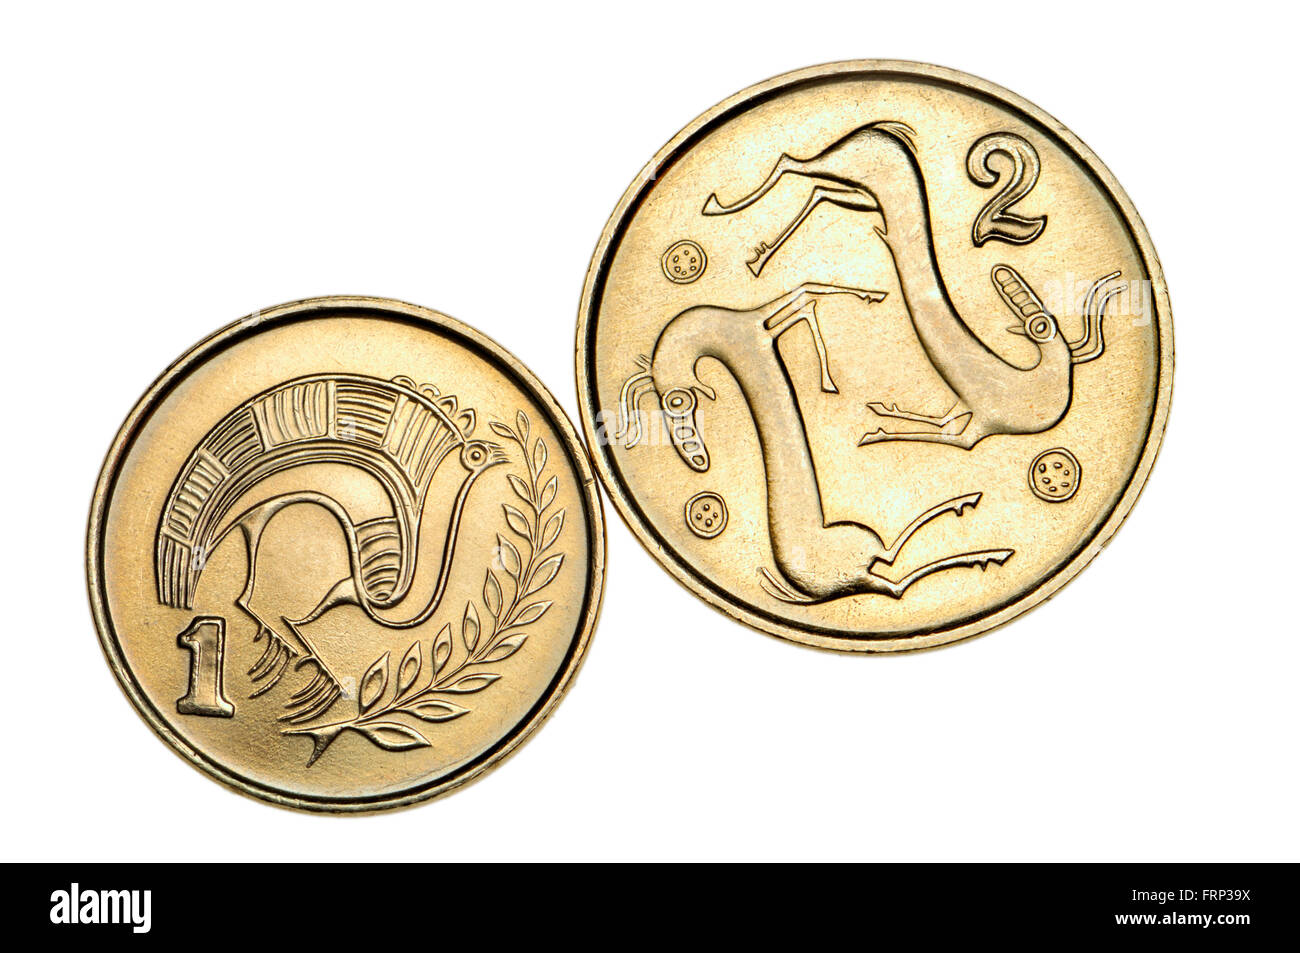 Pre-Euro coins of Cyprus: One cent showing Stylised bird perched on a branch from a jug of bichrome ware from the - Stock Image